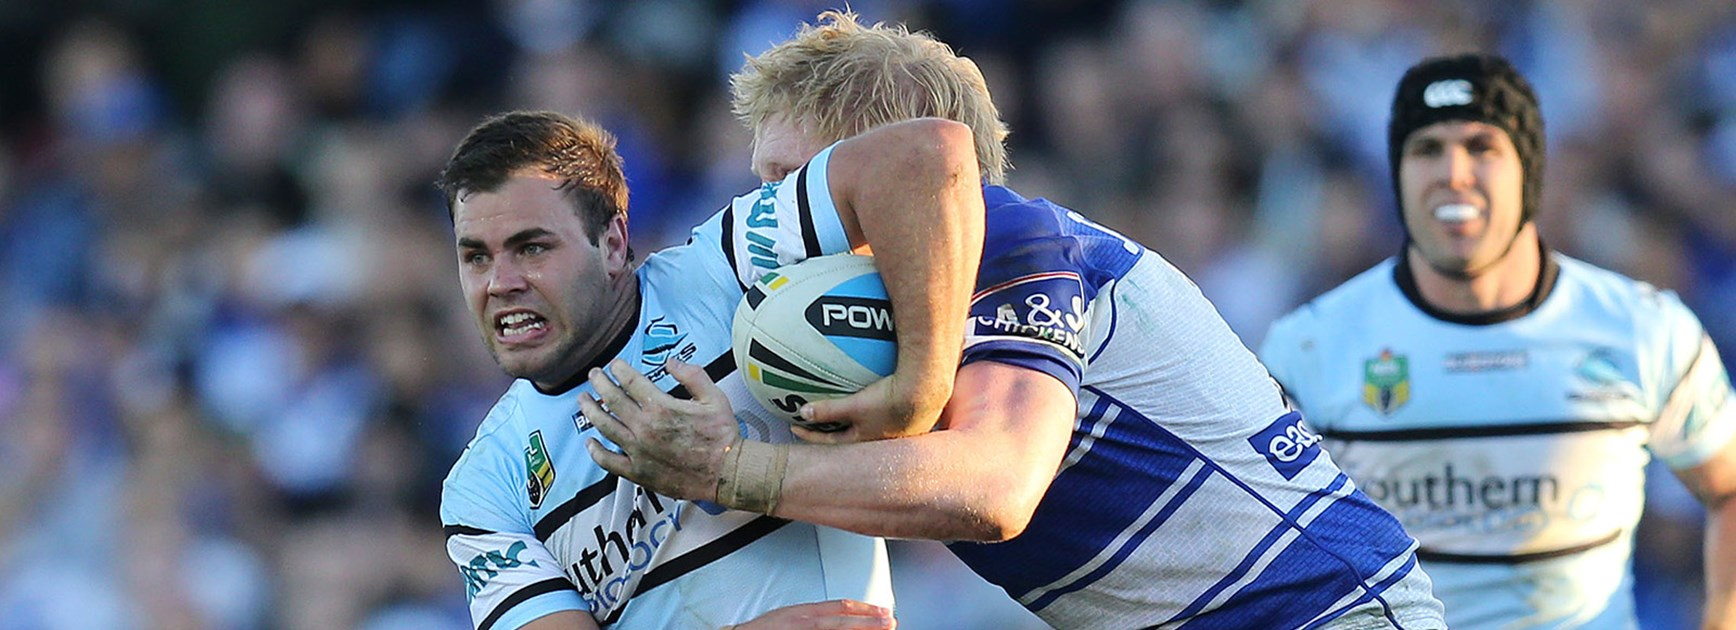 Cronulla's Wade Graham is tackled by Canterbury's James Graham in Round 20 at Belmore Sports Ground.